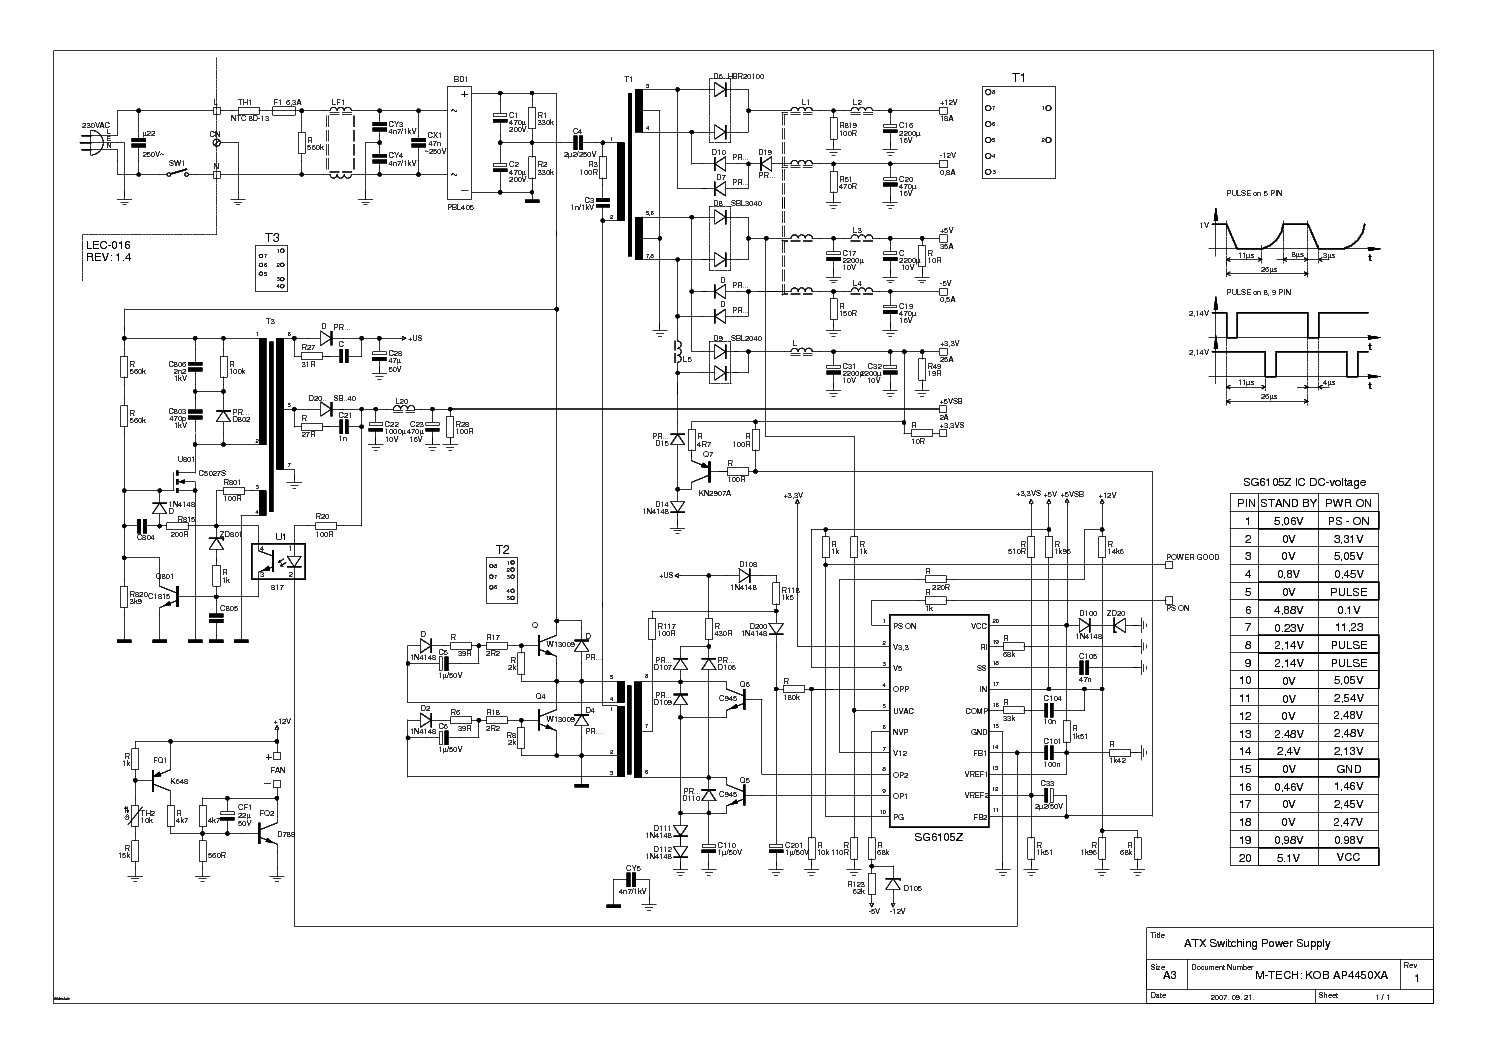 medium resolution of atx power supply schematic w jpg similiar atx power supply wiring diagram keywords 1489 x 1053